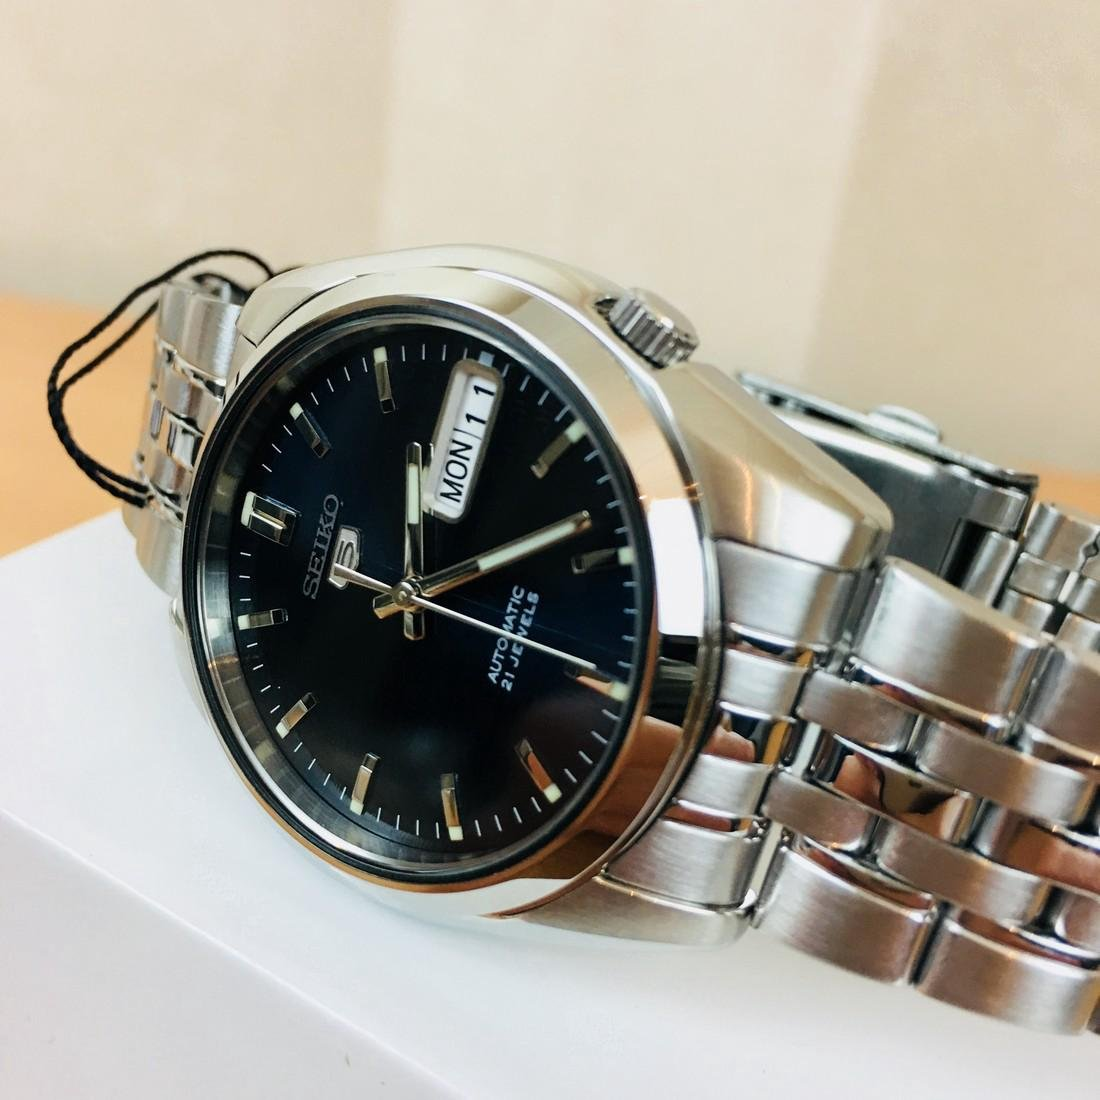 SEIKO 5 Men's Automatic Watch Brand New with Box - 2